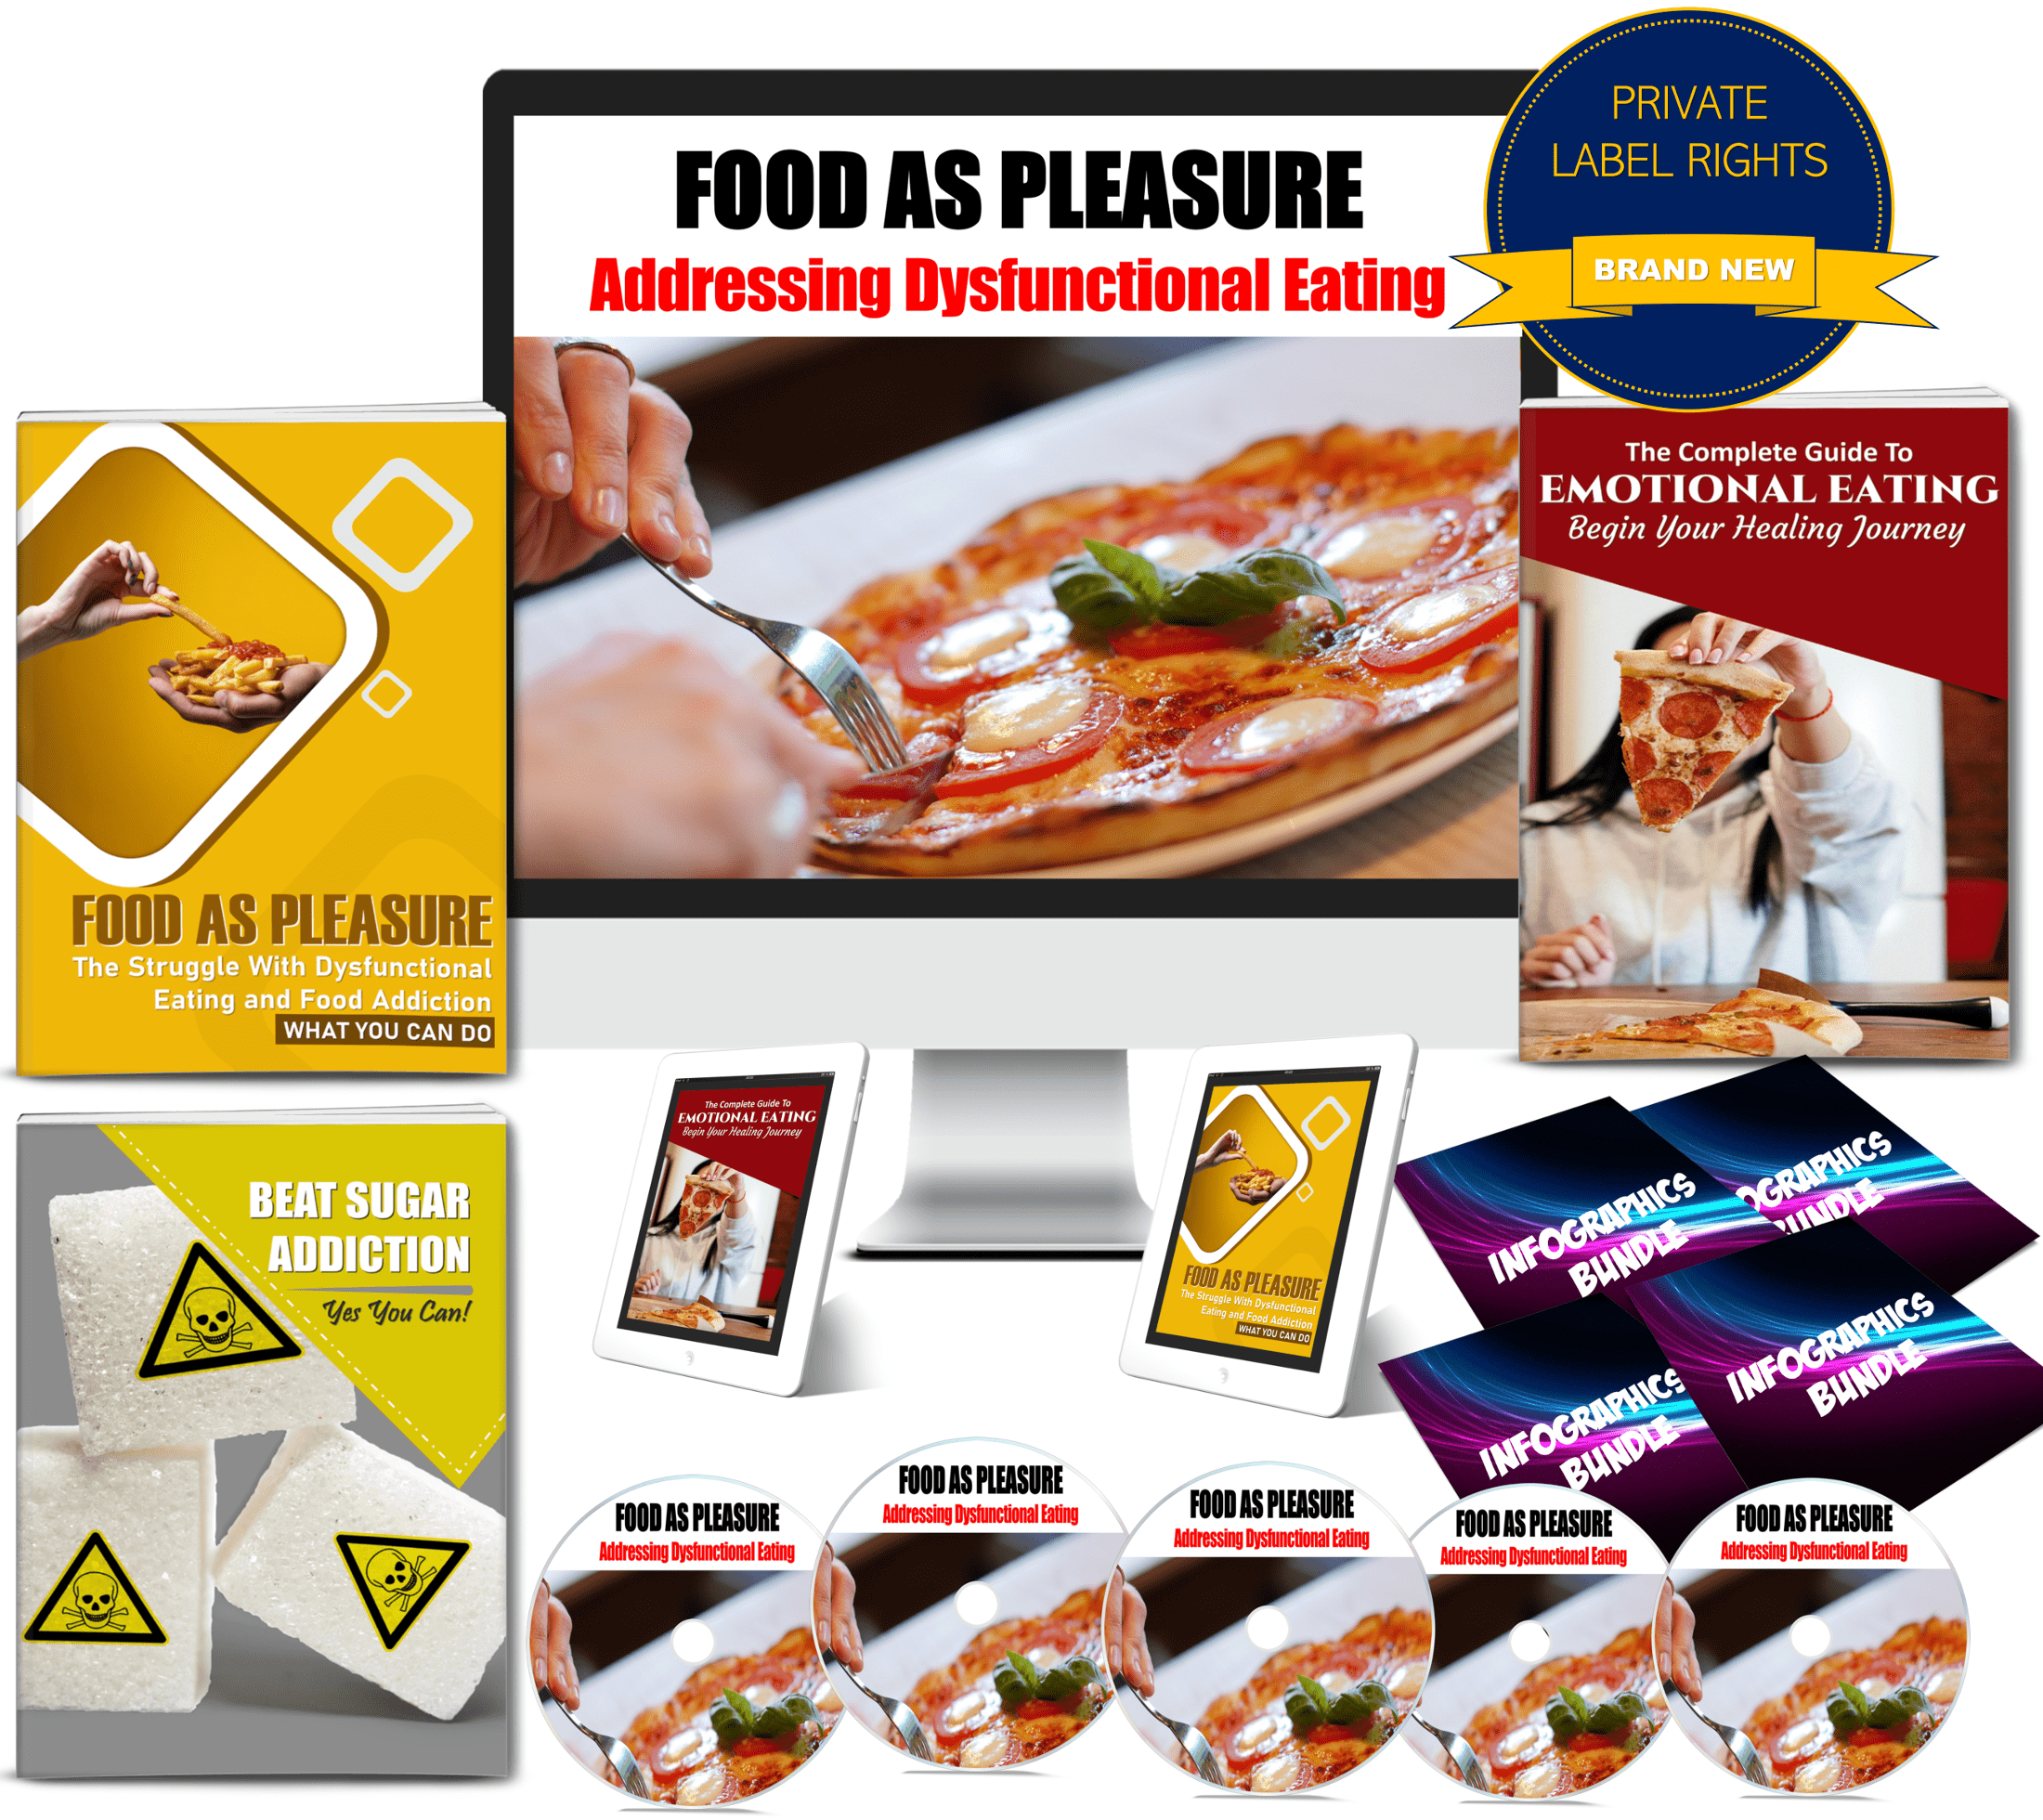 Food As Pleasure: Food Addiction and Emotional Overeating Content With PLR Rights